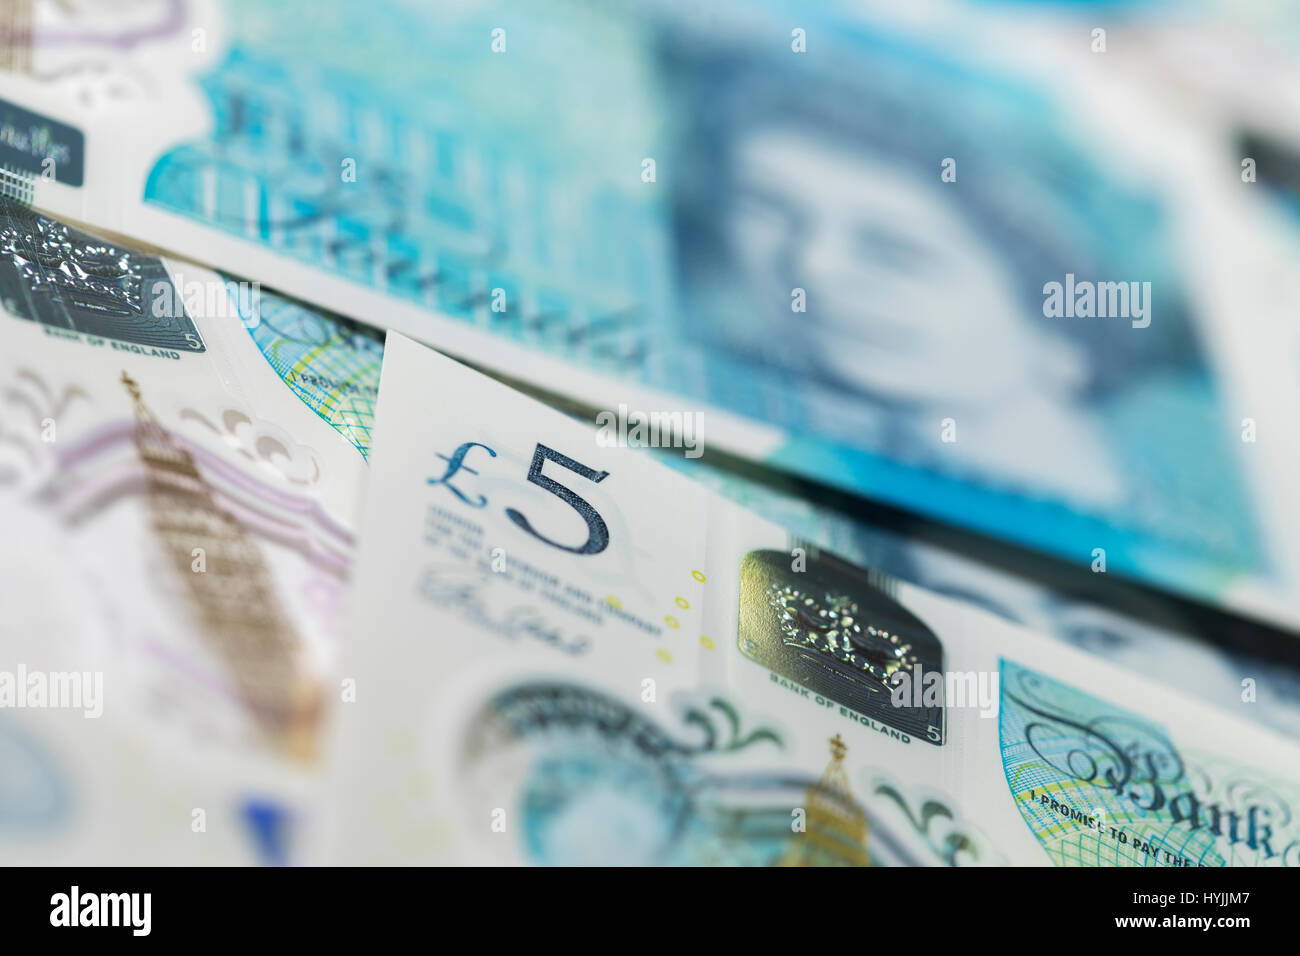 British Currency close up - pile of New Polymer Five Pound Notes, Sterling, Cash - Stock Image